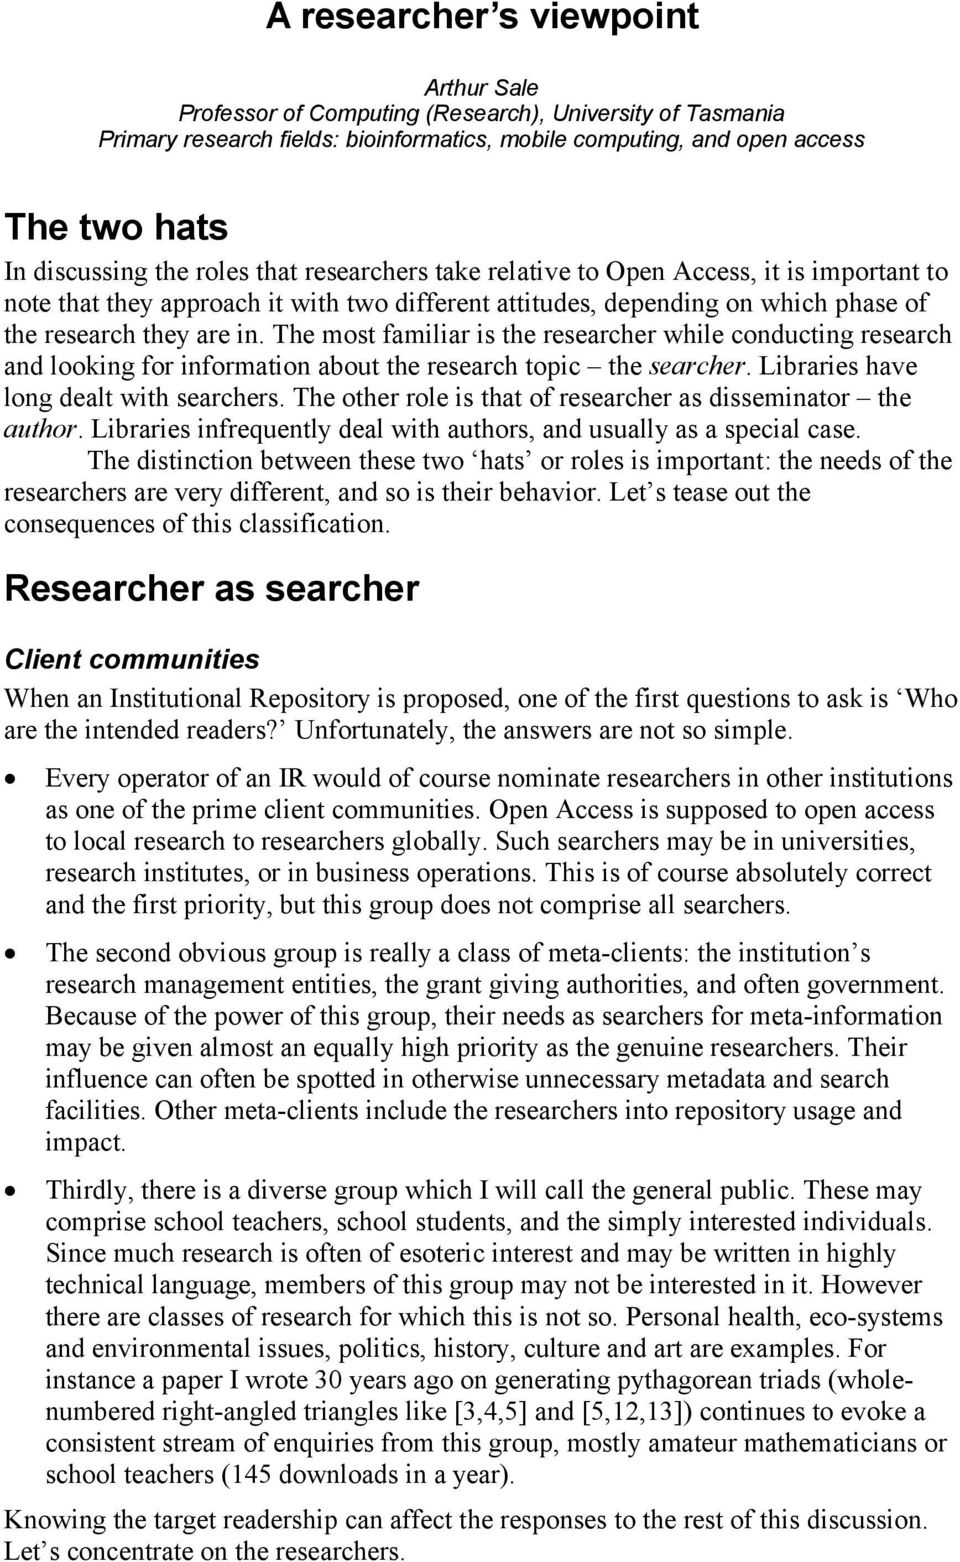 The most familiar is the researcher while conducting research and looking for information about the research topic the searcher. Libraries have long dealt with searchers.